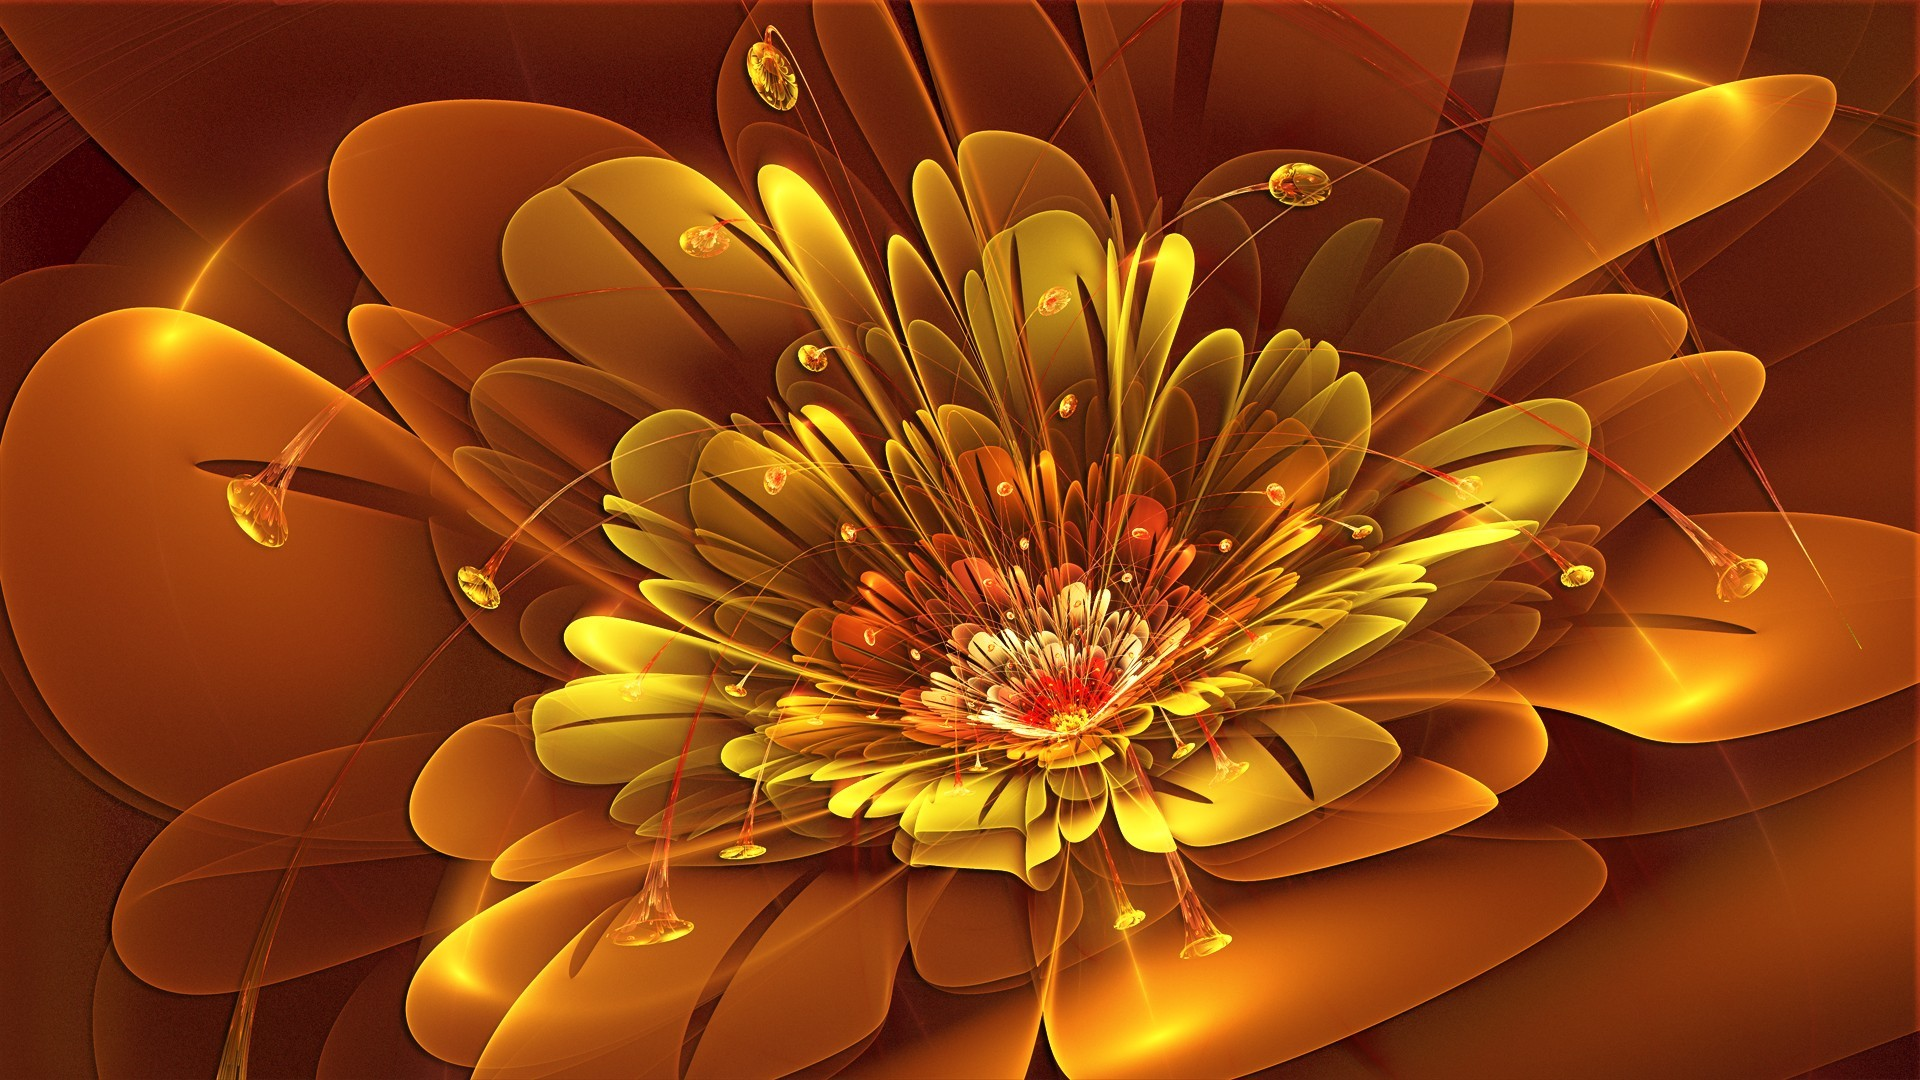 Abstract Flower Wallpaper | Rose Pictures